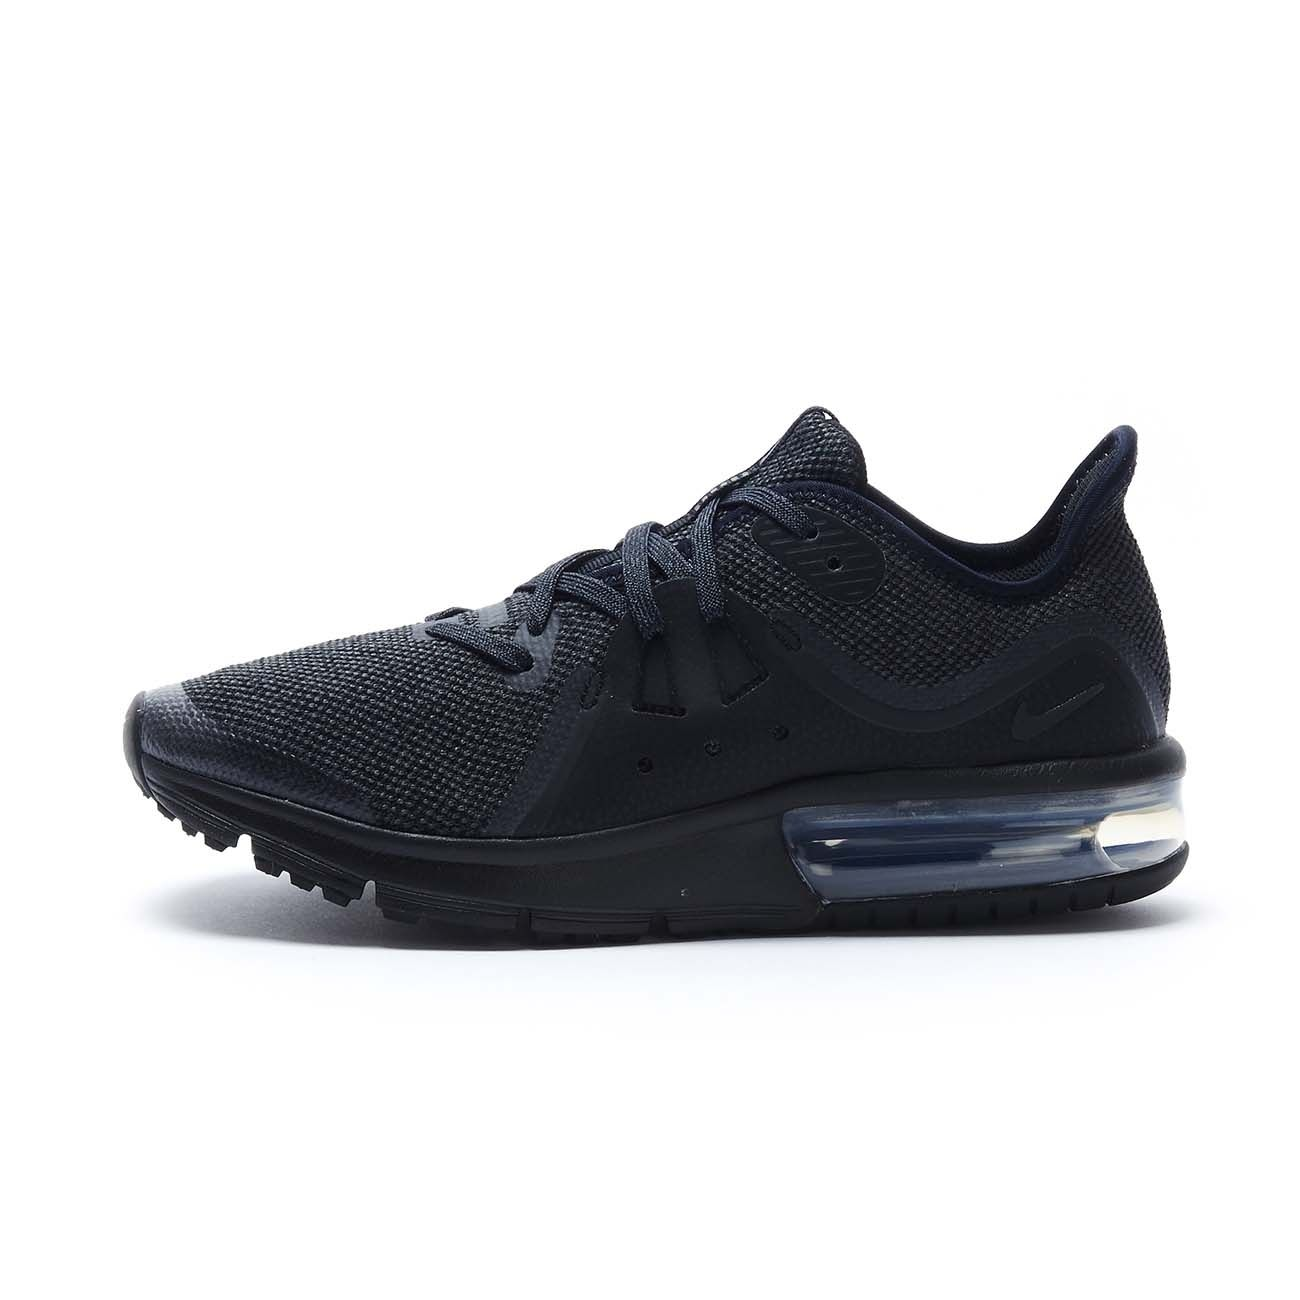 NIKE SNEAKERS AIR MAX SEQUENT 3 Bambino Black anthracite ...